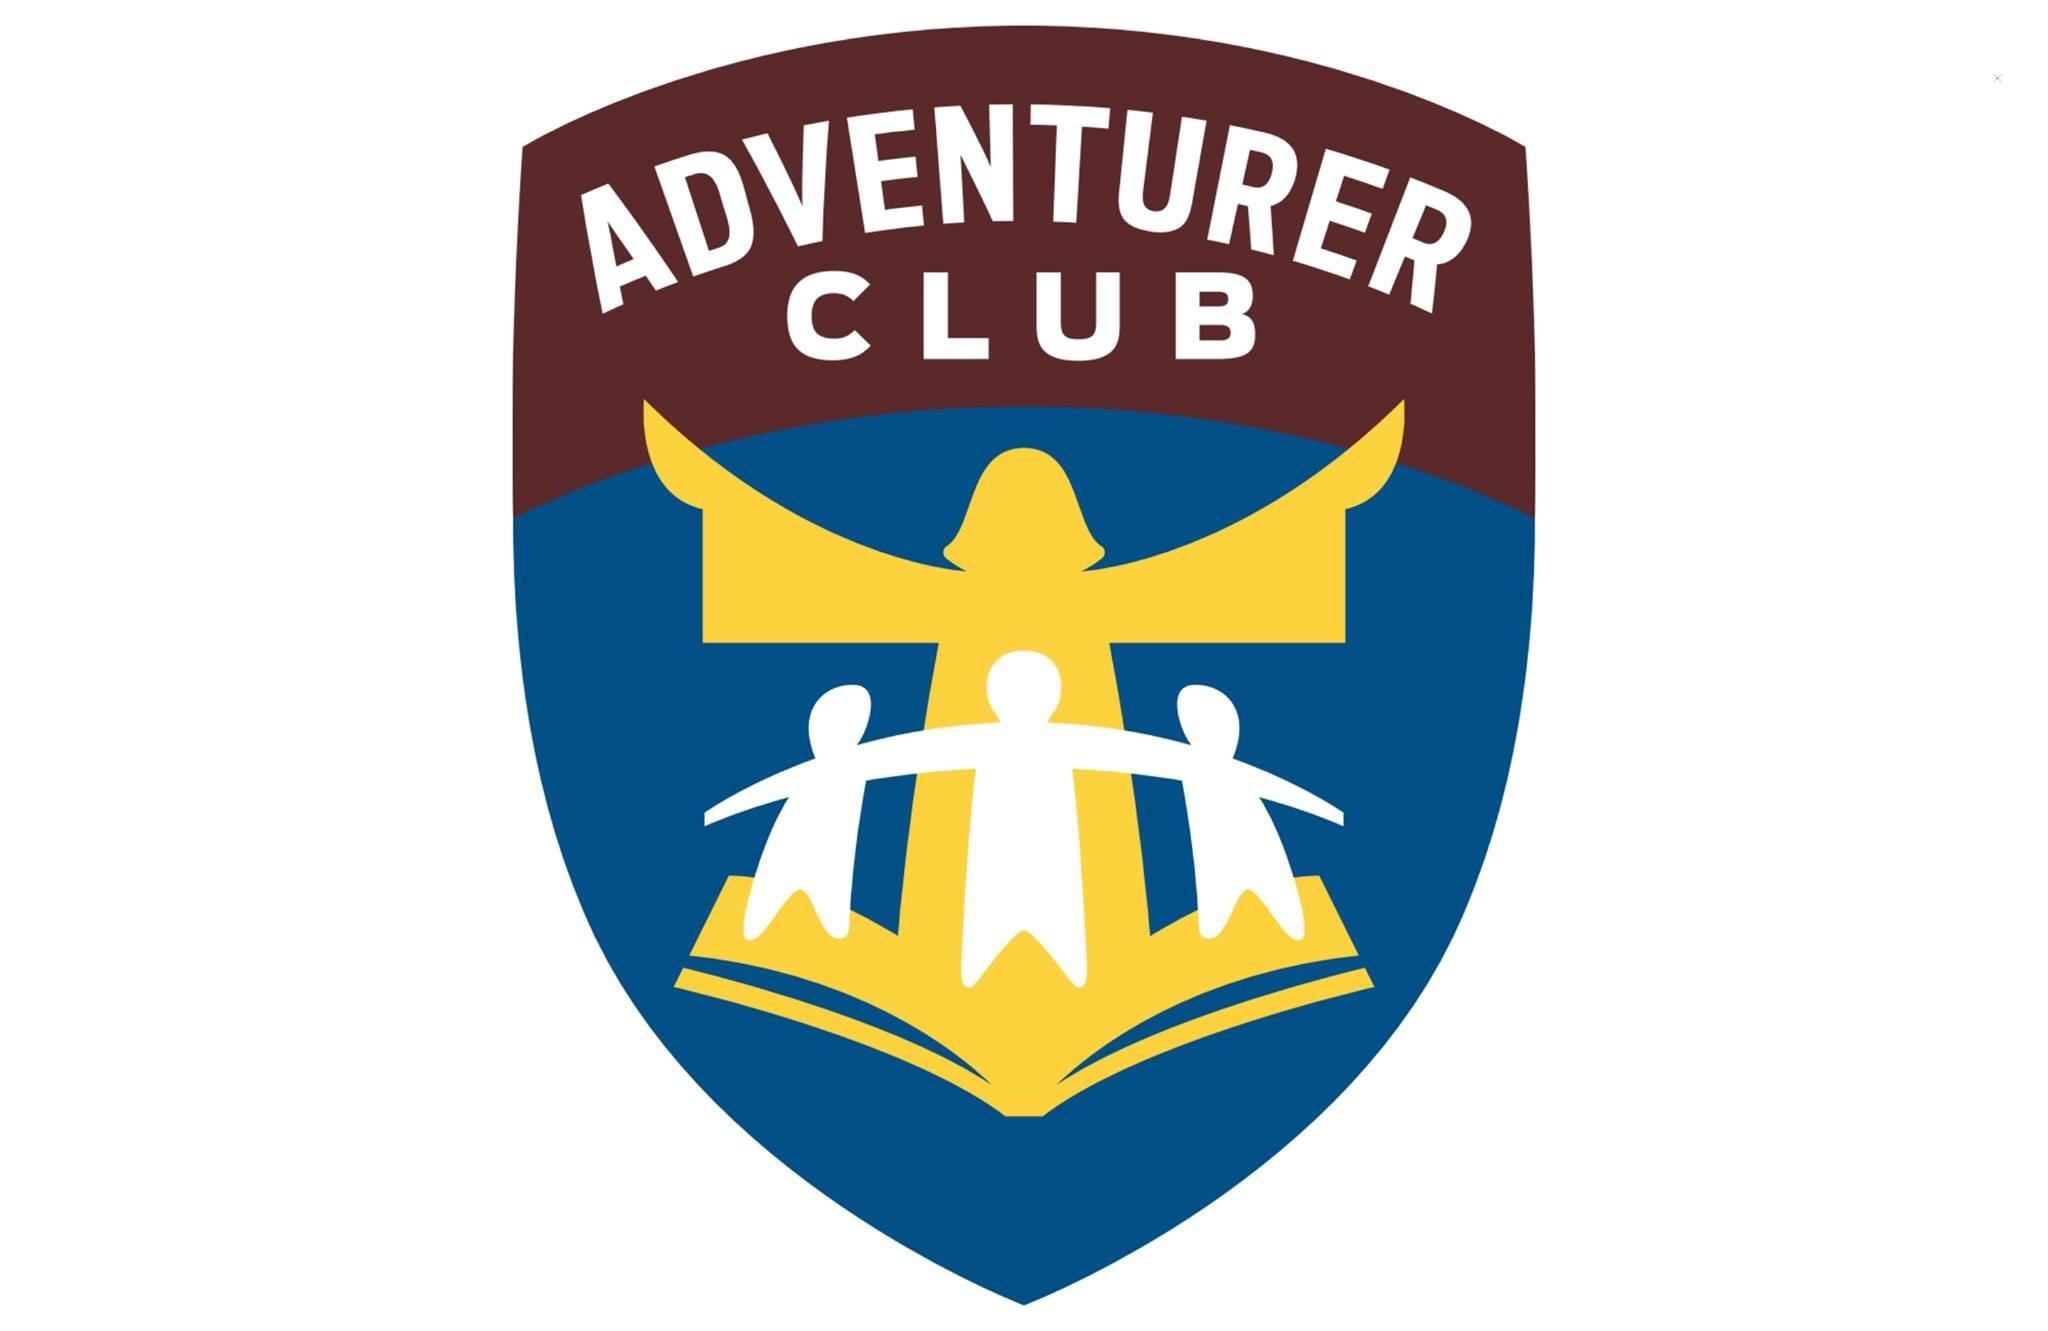 Adventurer Club Registration